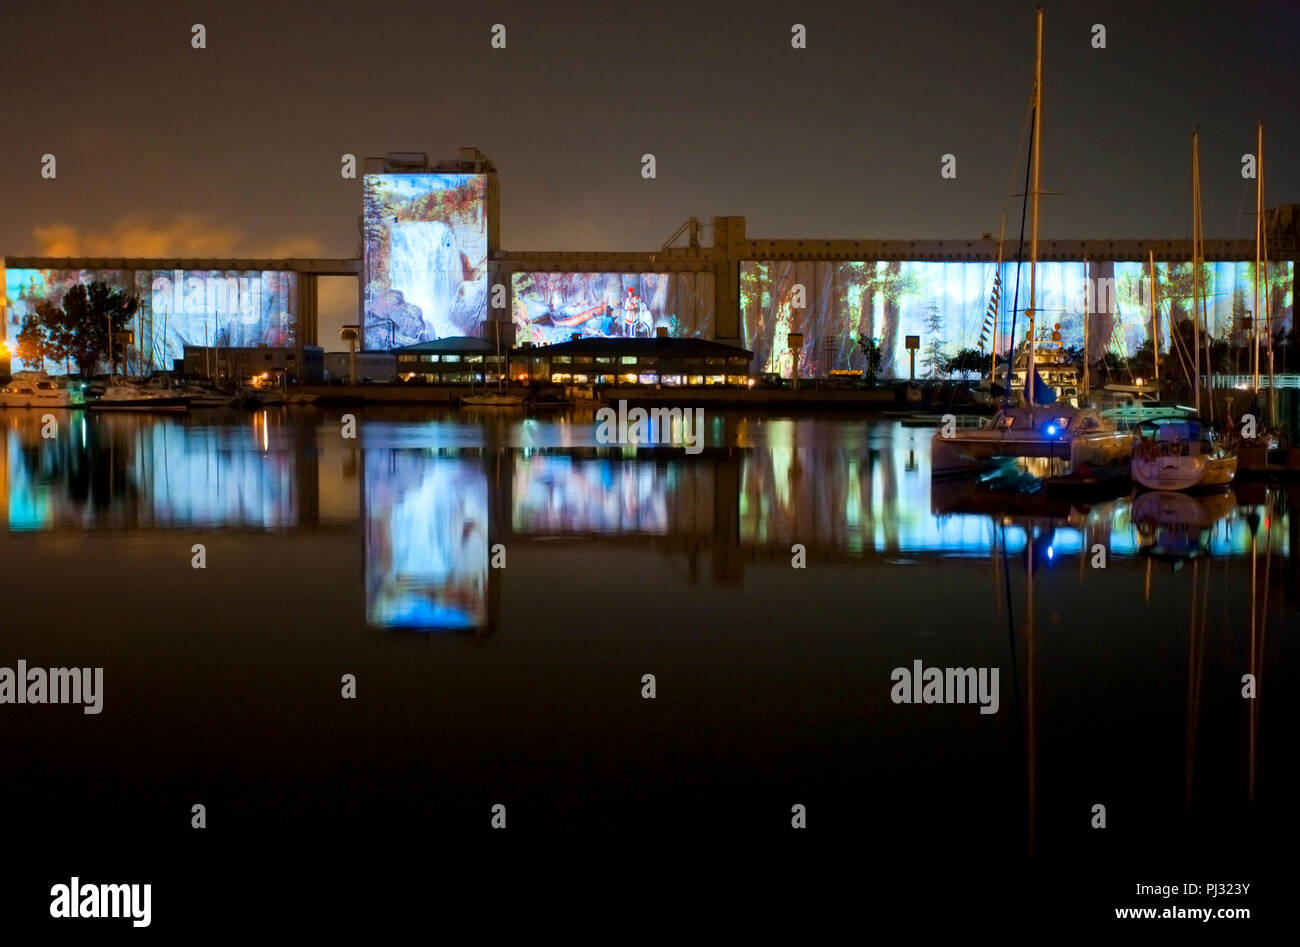 North America, Canada, Quebec, Quebec City, The Image Mill light show projected on the Old Port grain elevators - Stock Image